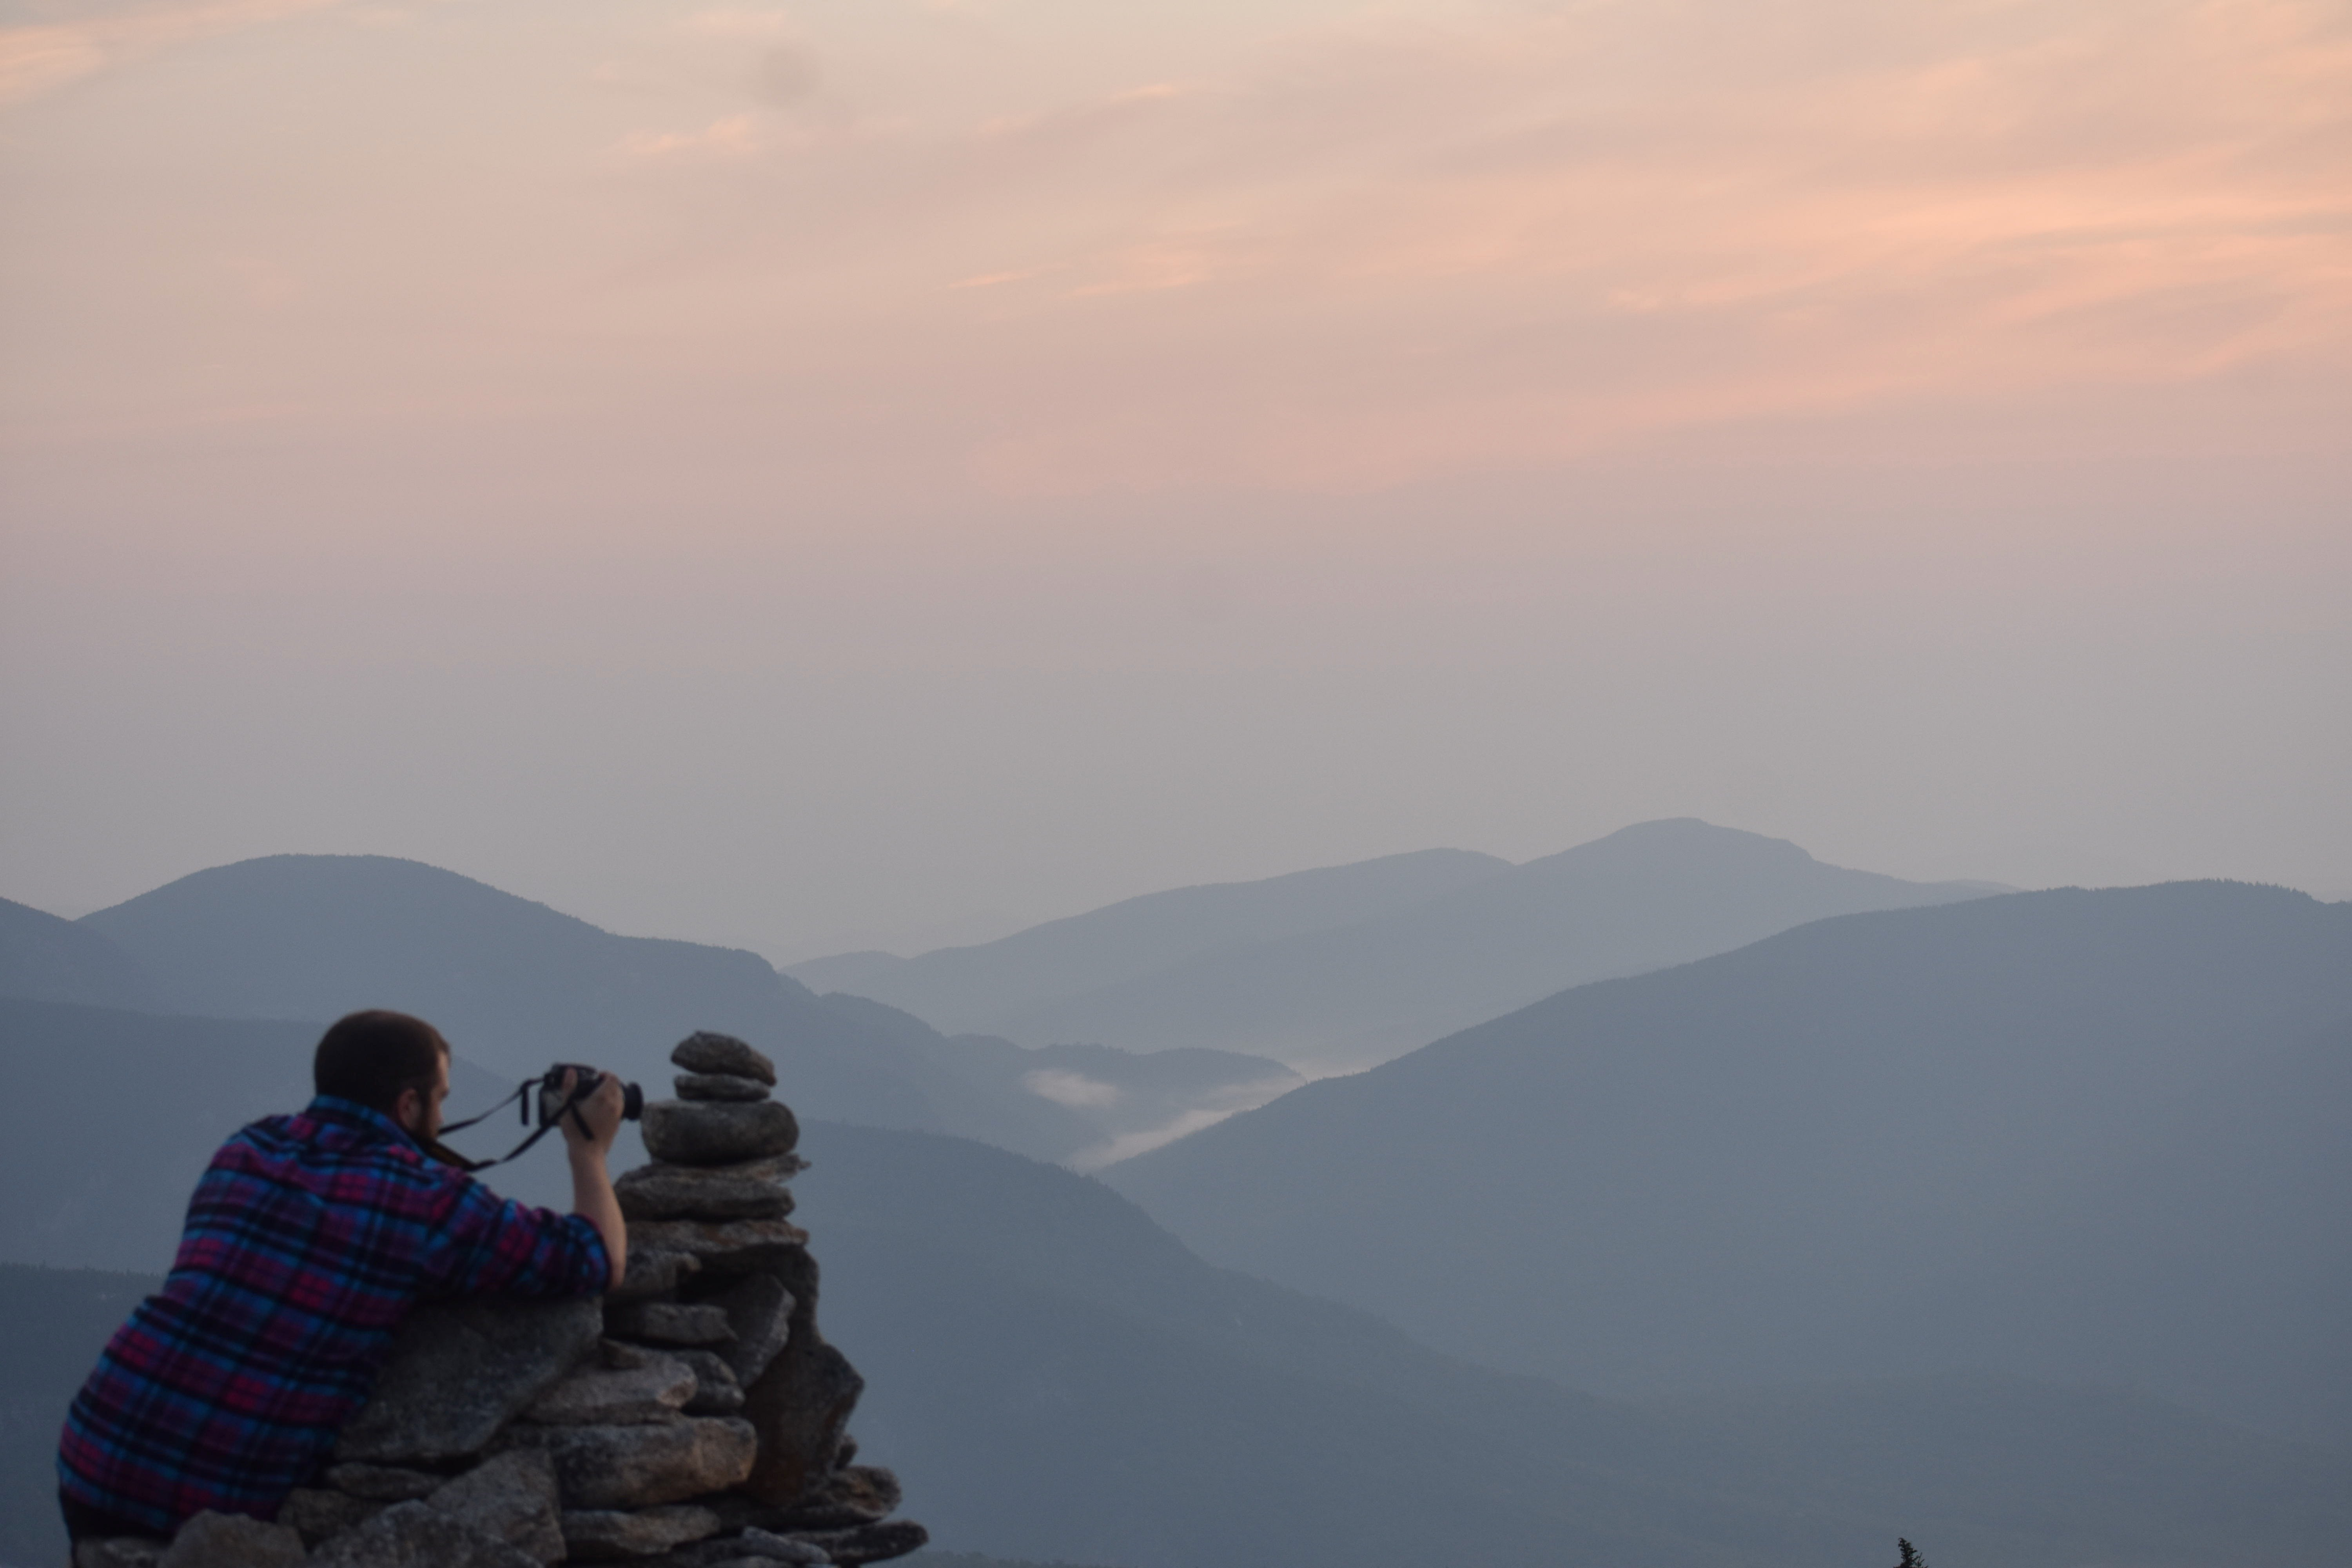 North Baldface & South Baldface Hiking Trail Guide: Map, Trail Descriptions, Pictures & More